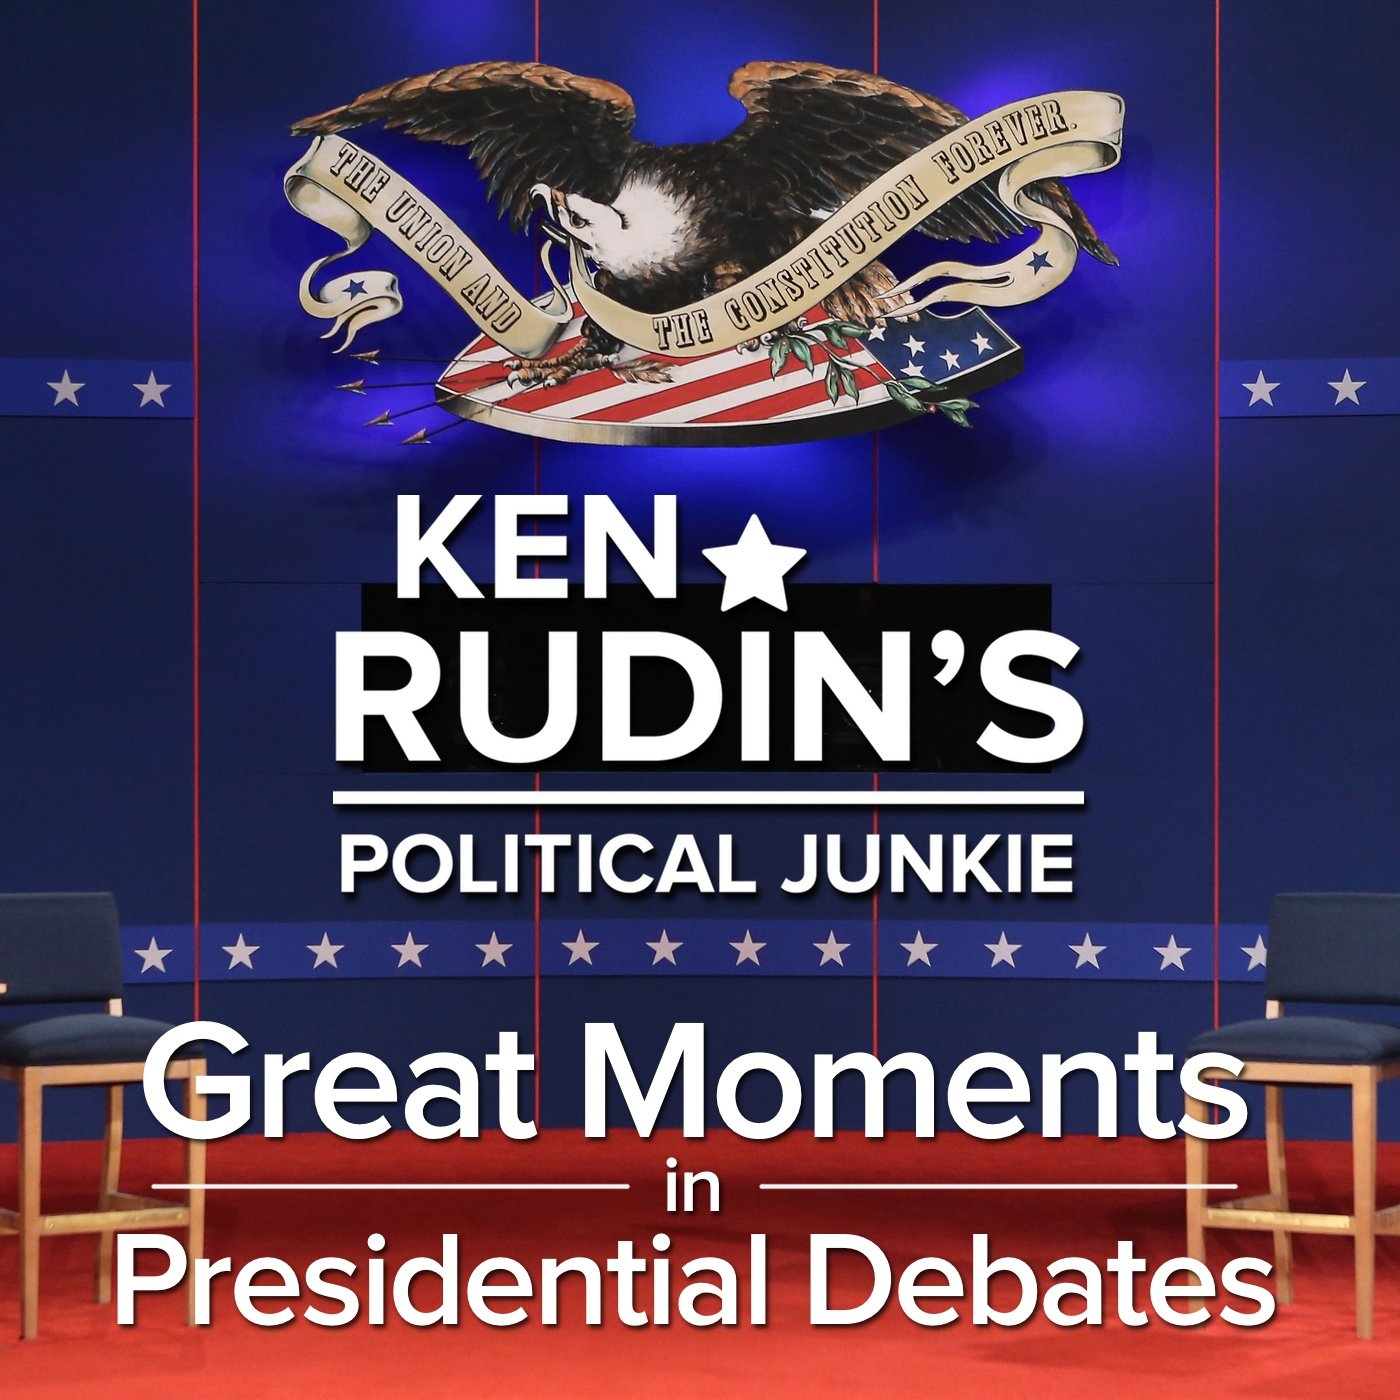 Great-moments-in-presidential-debates-special-logo_small